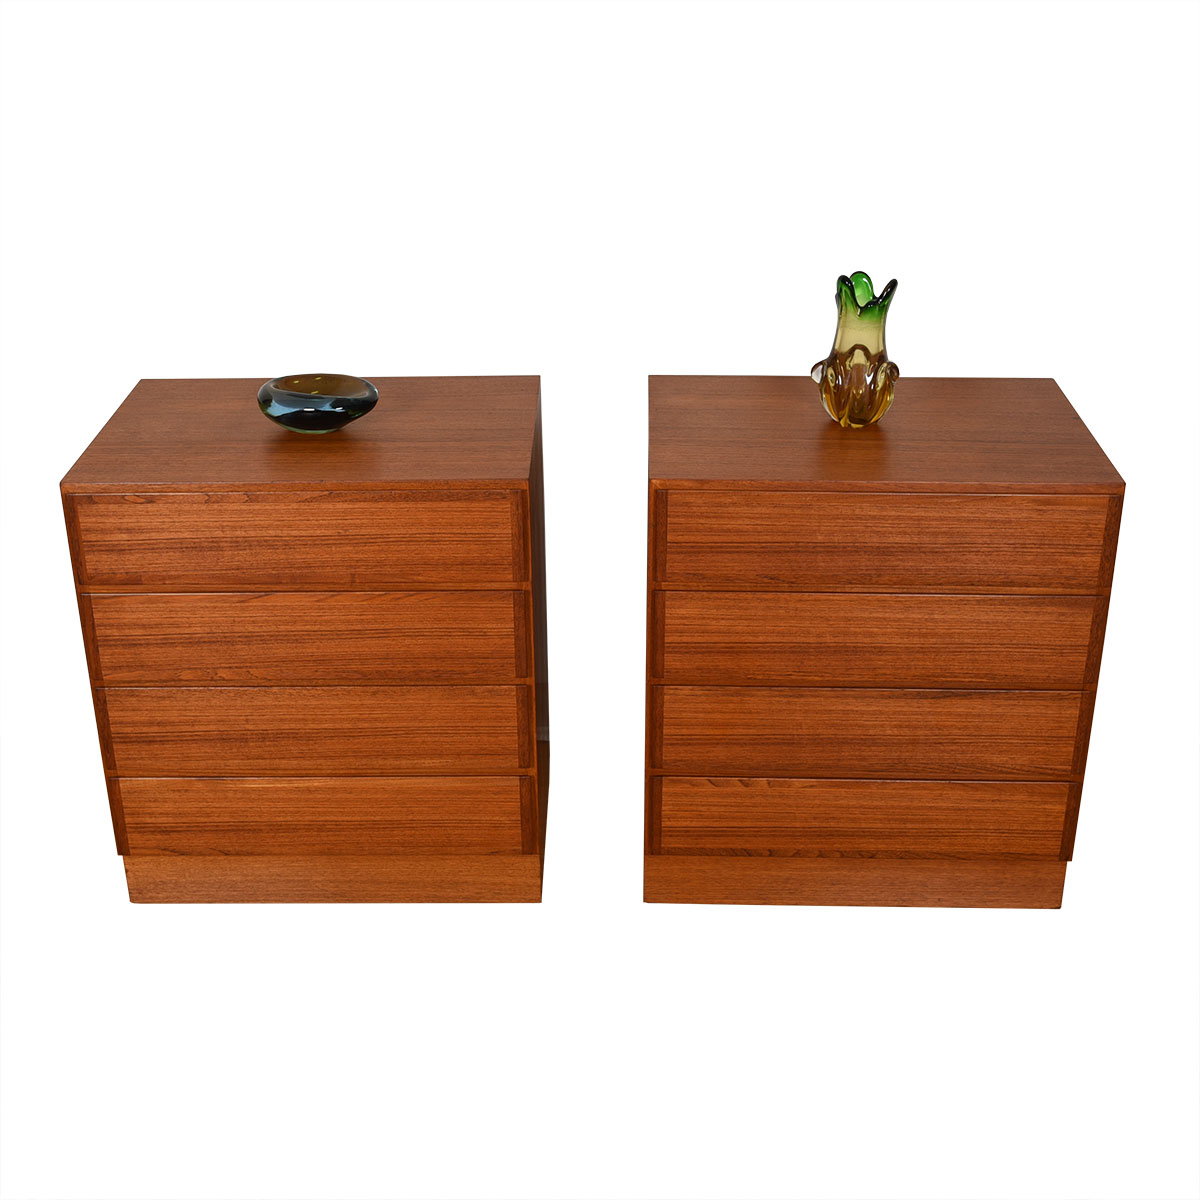 Omann Jun. Pair of Danish Teak Petite Chests of Drawers / Nightstands